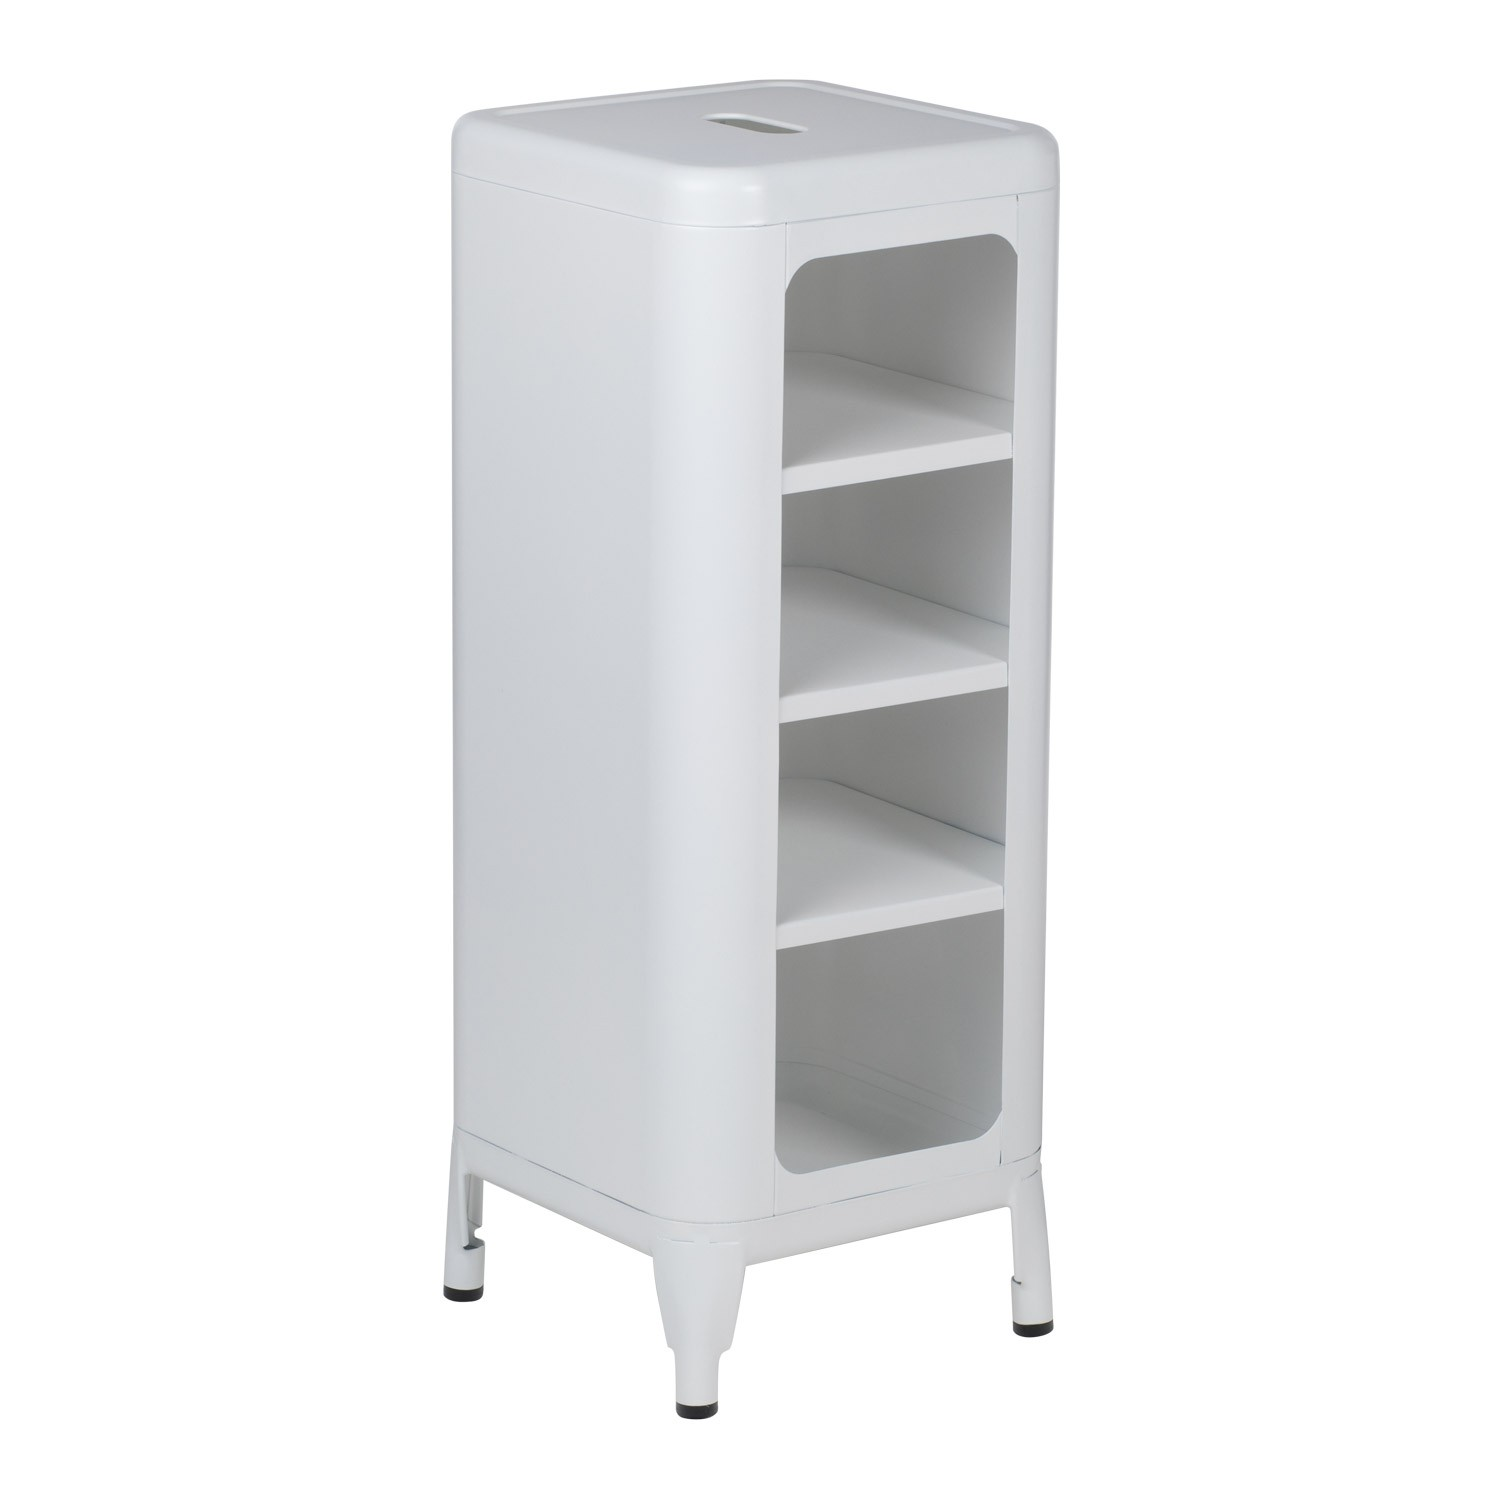 Medium  Shelves Unit LIX, gallery image 1